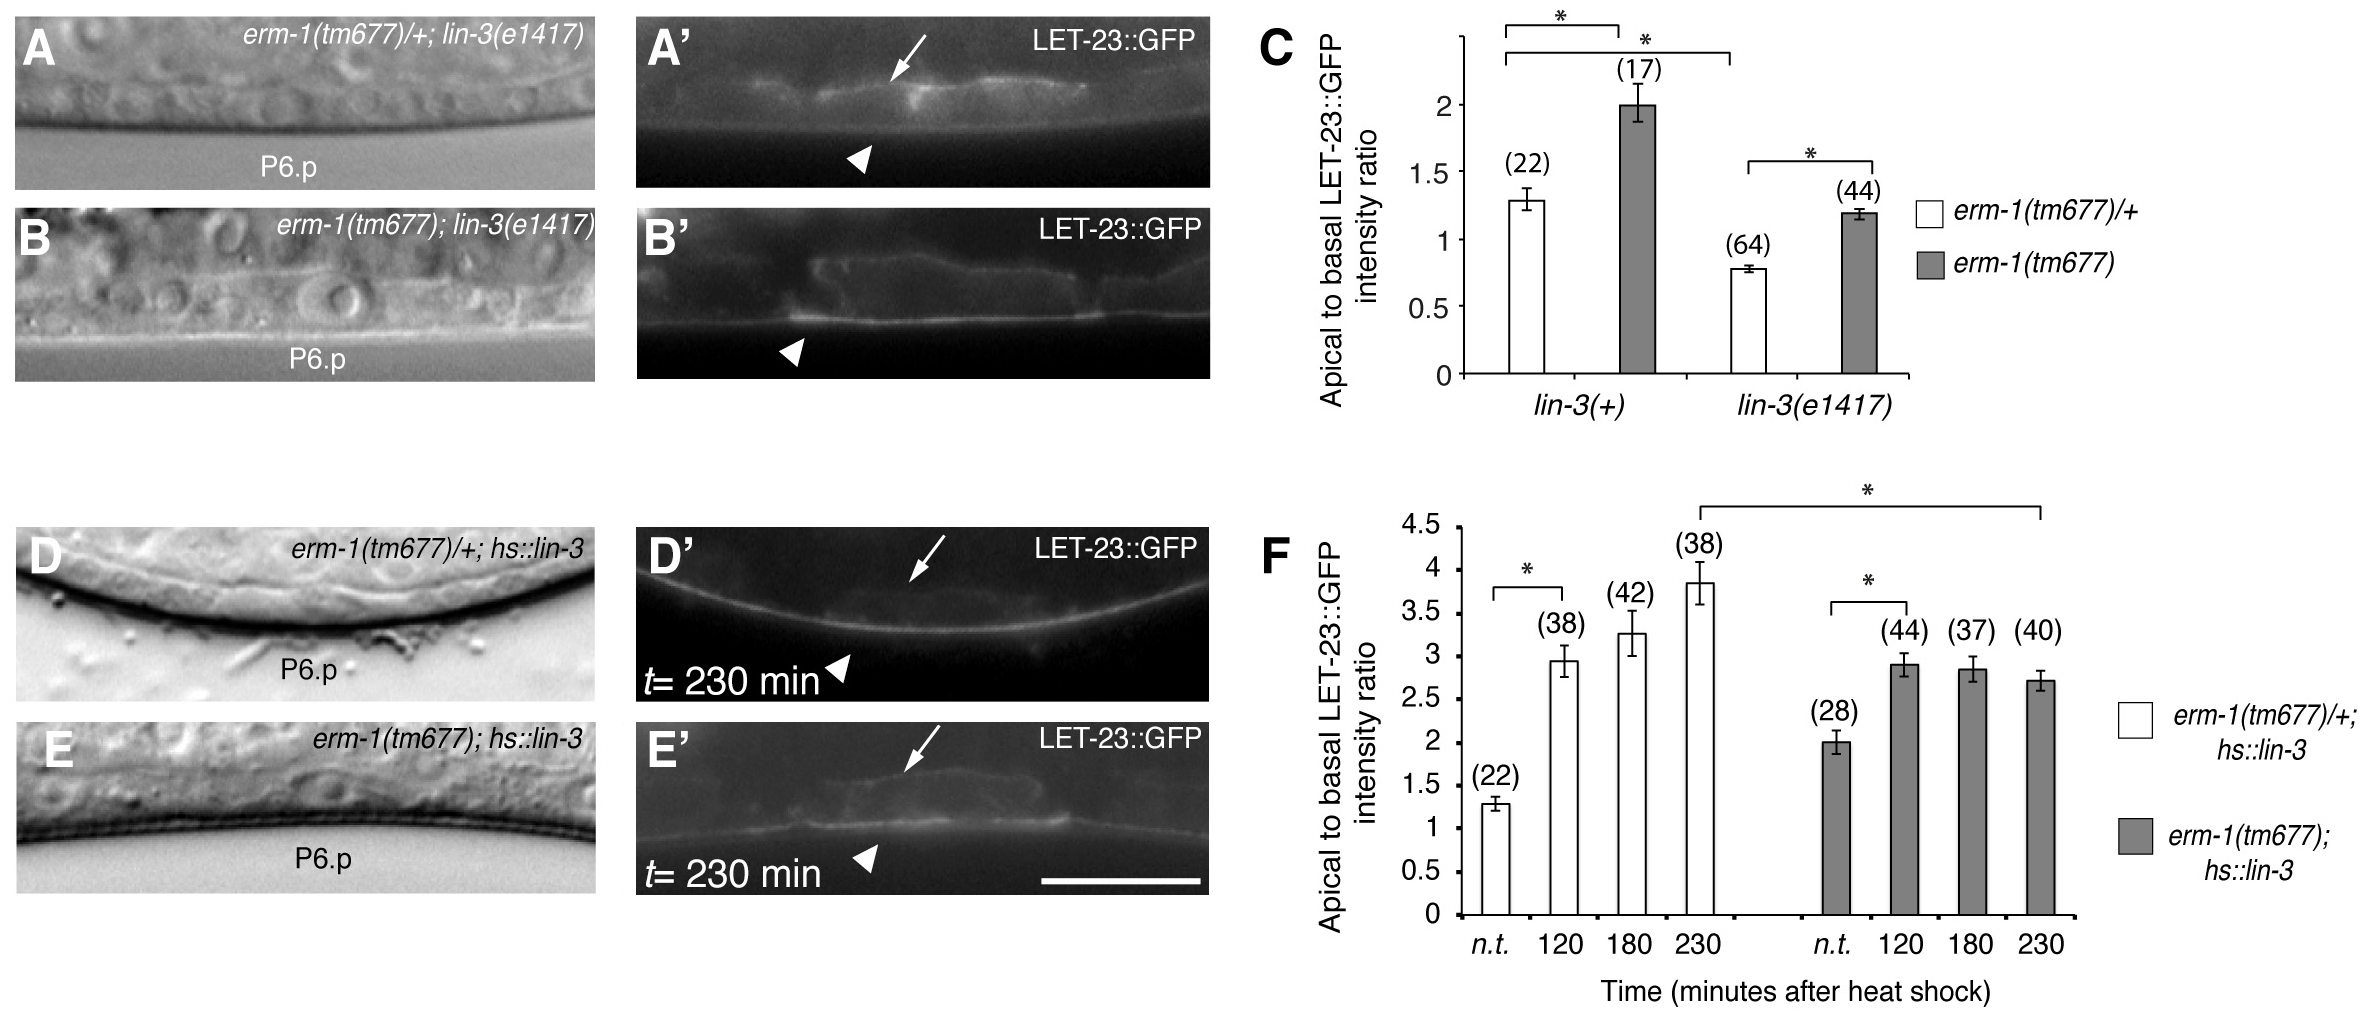 The LIN-3 EGF ligand stimulates and ERM-1 inhibits internalization and recycling of LET-23 on the basolateral membrane.